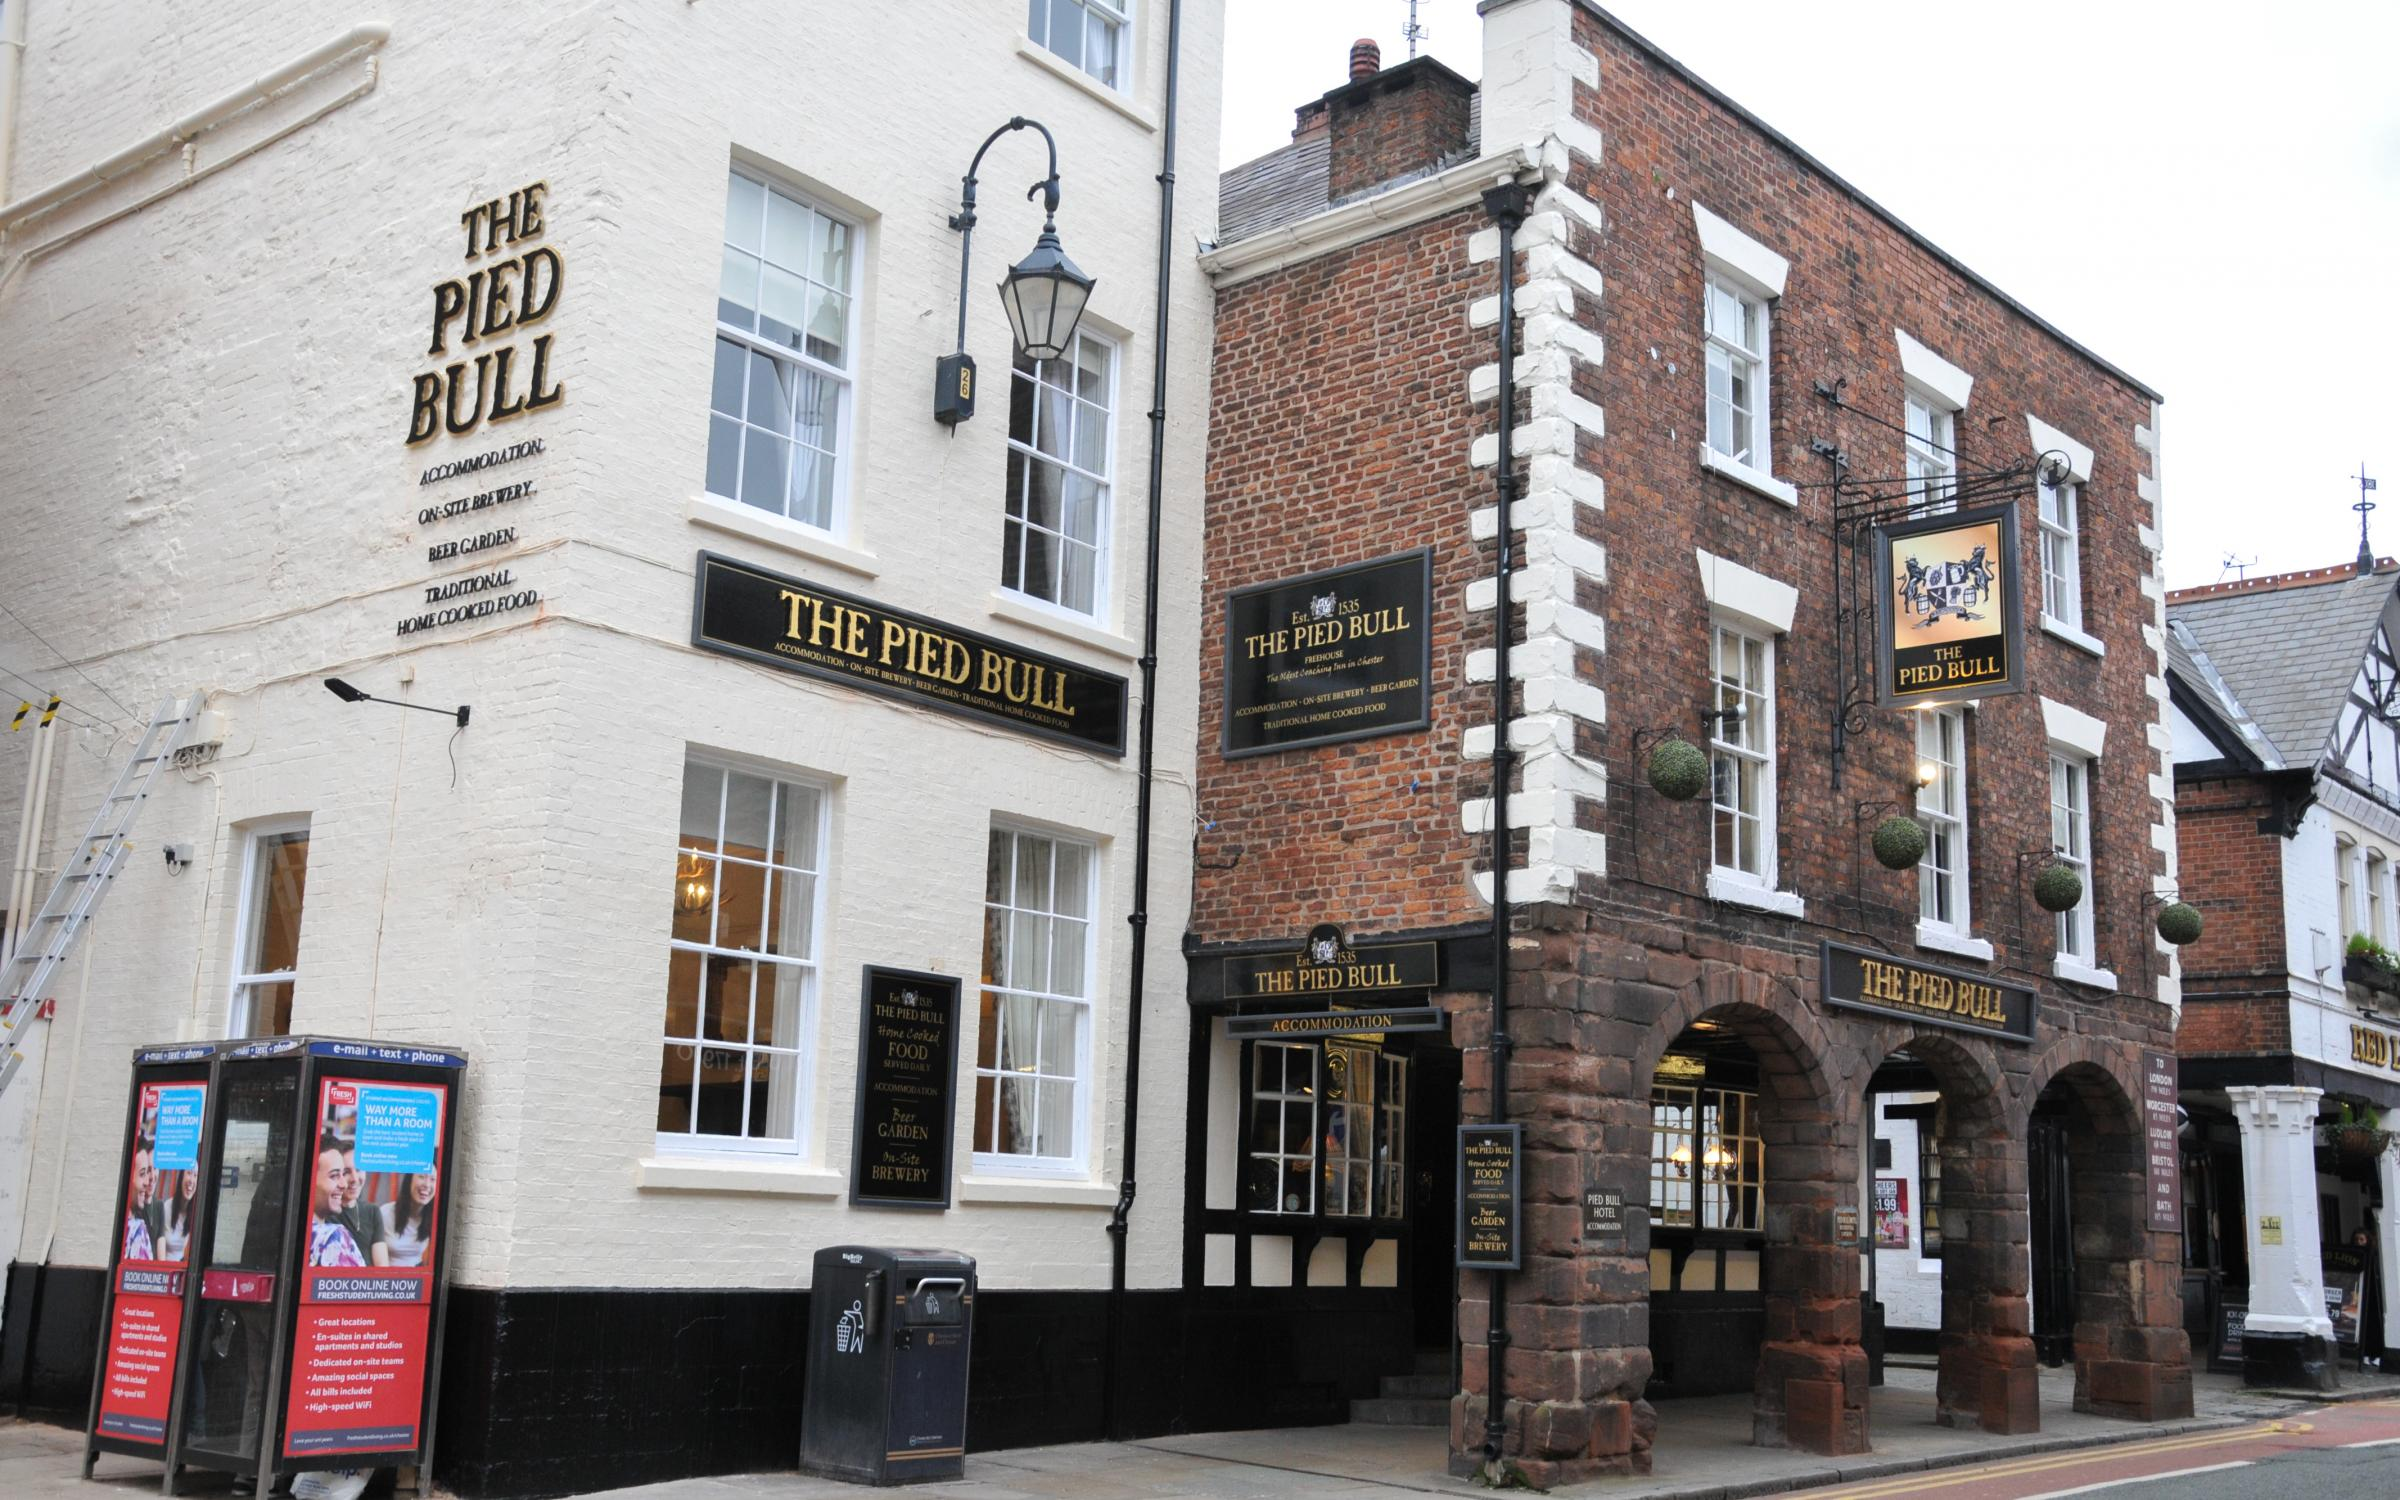 Chester: Dancing football fan lit flare sparking evacuation of Pied Bull pub